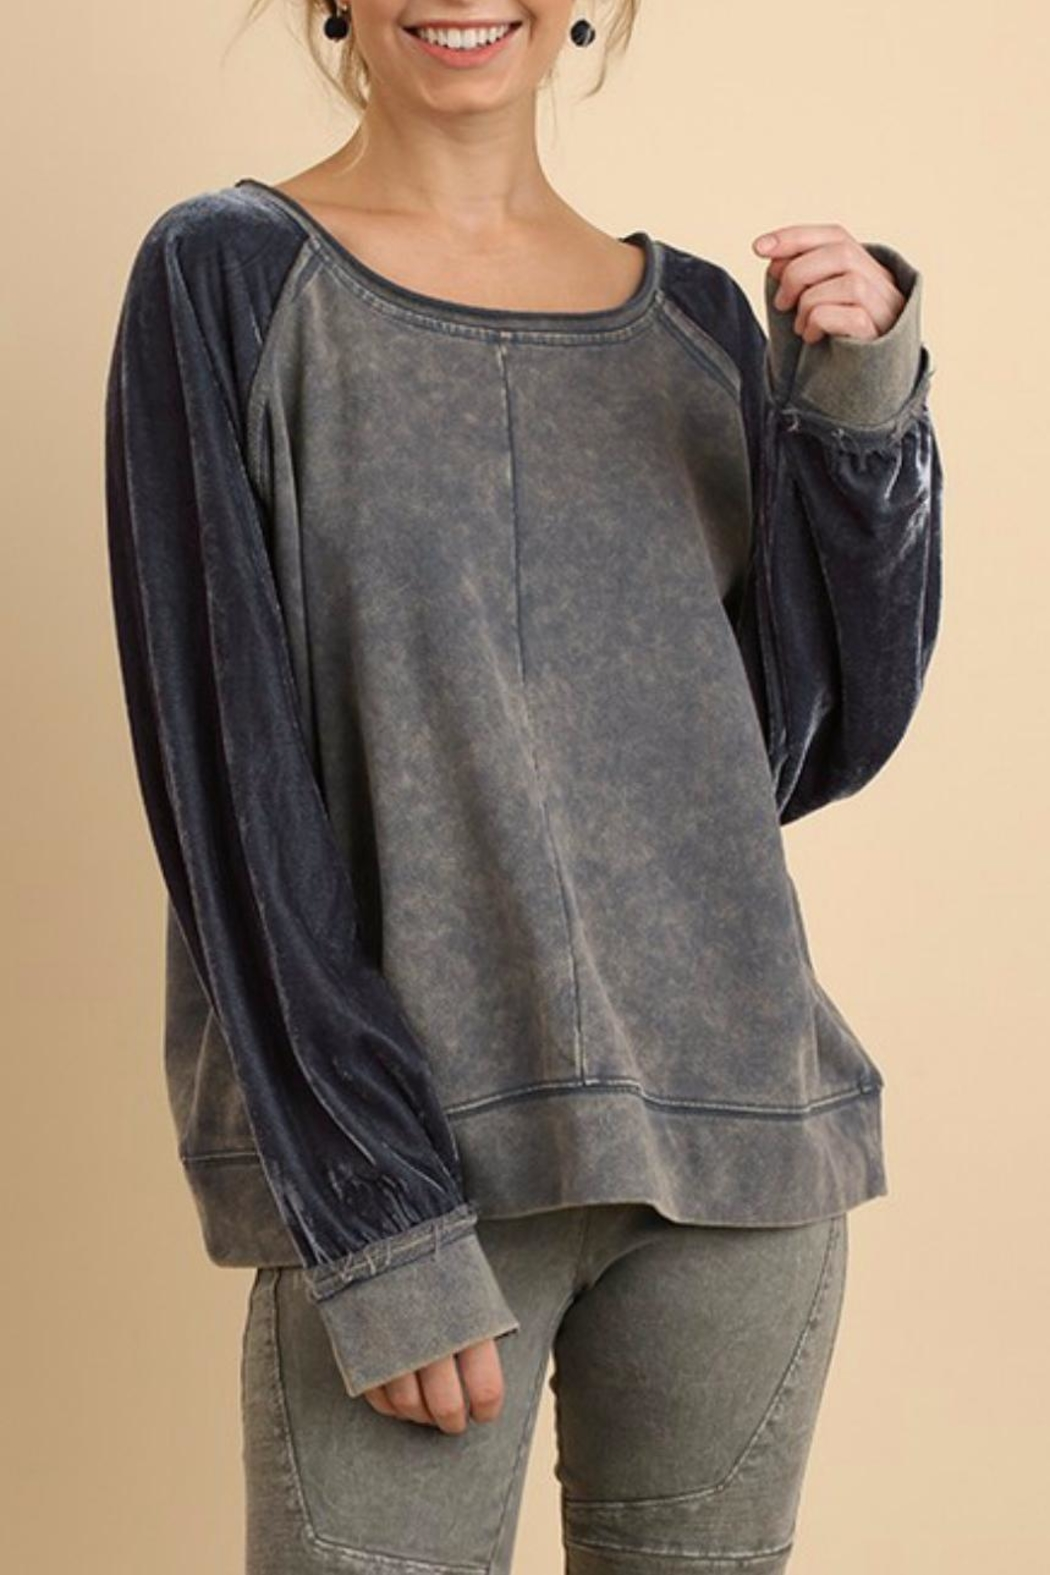 228347d96ec8a Umgee USA Velvet Sleeve Sweatshirt from Wyckoff by Bedford Basket ...